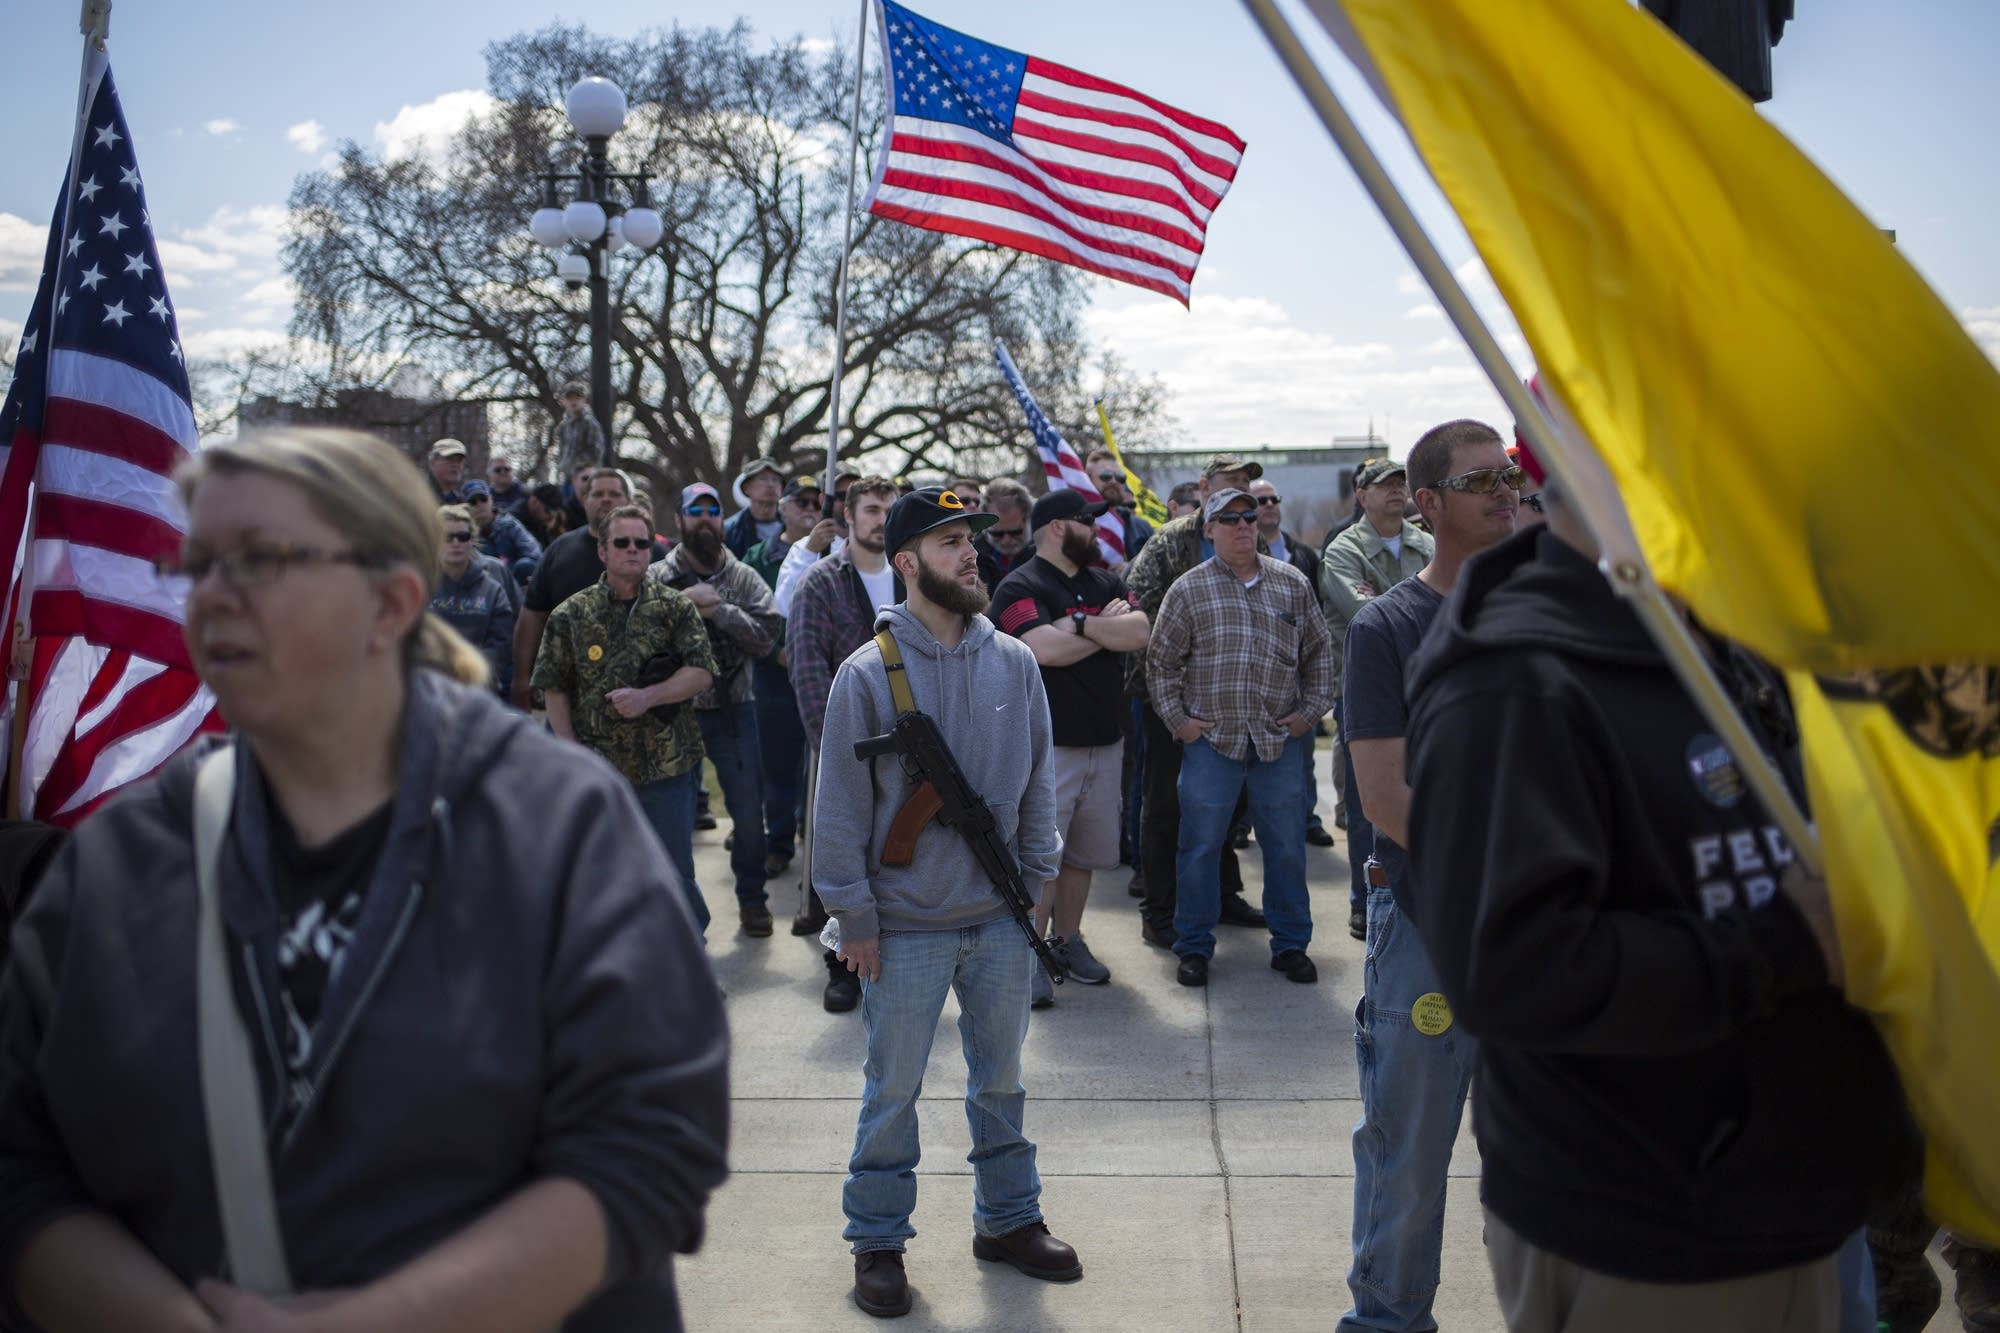 A man who asked not to be identified, center, carries a firearm.